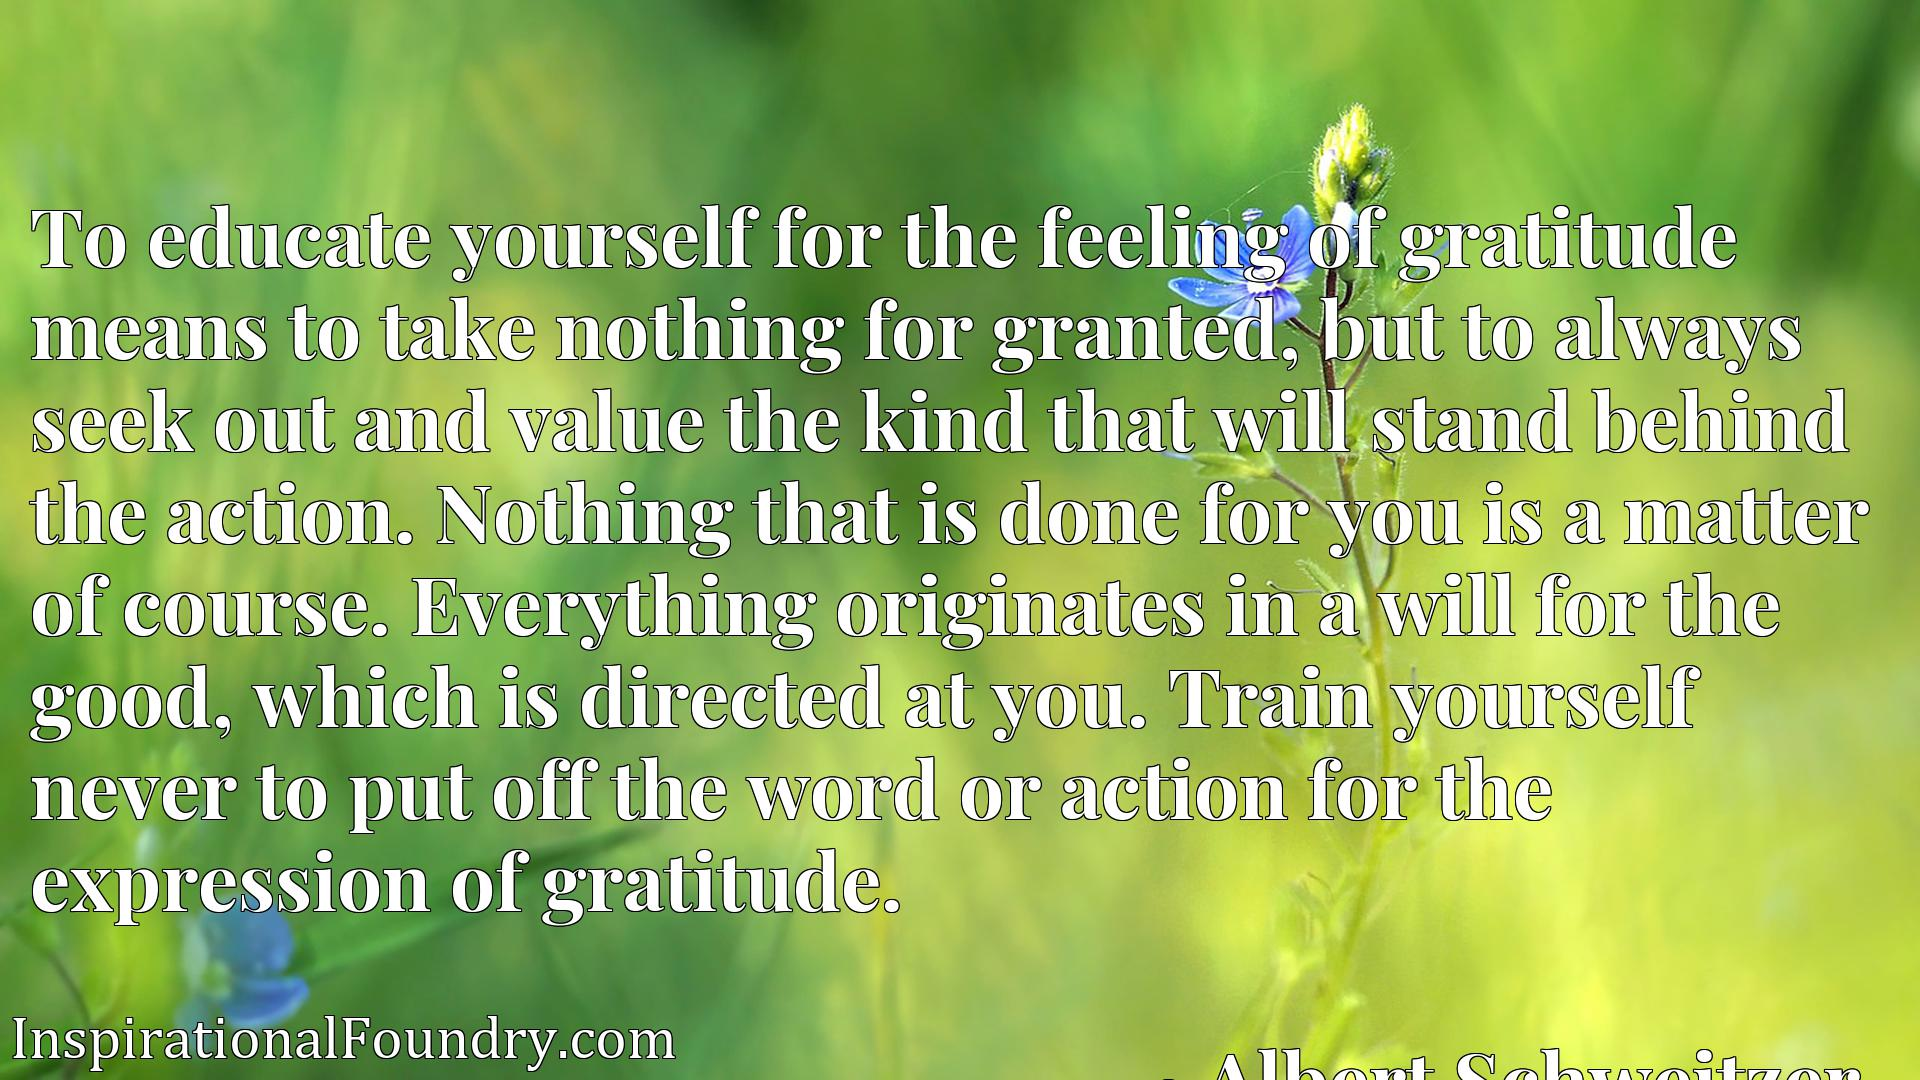 To educate yourself for the feeling of gratitude means to take nothing for granted, but to always seek out and value the kind that will stand behind the action. Nothing that is done for you is a matter of course. Everything originates in a will for the good, which is directed at you. Train yourself never to put off the word or action for the expression of gratitude.